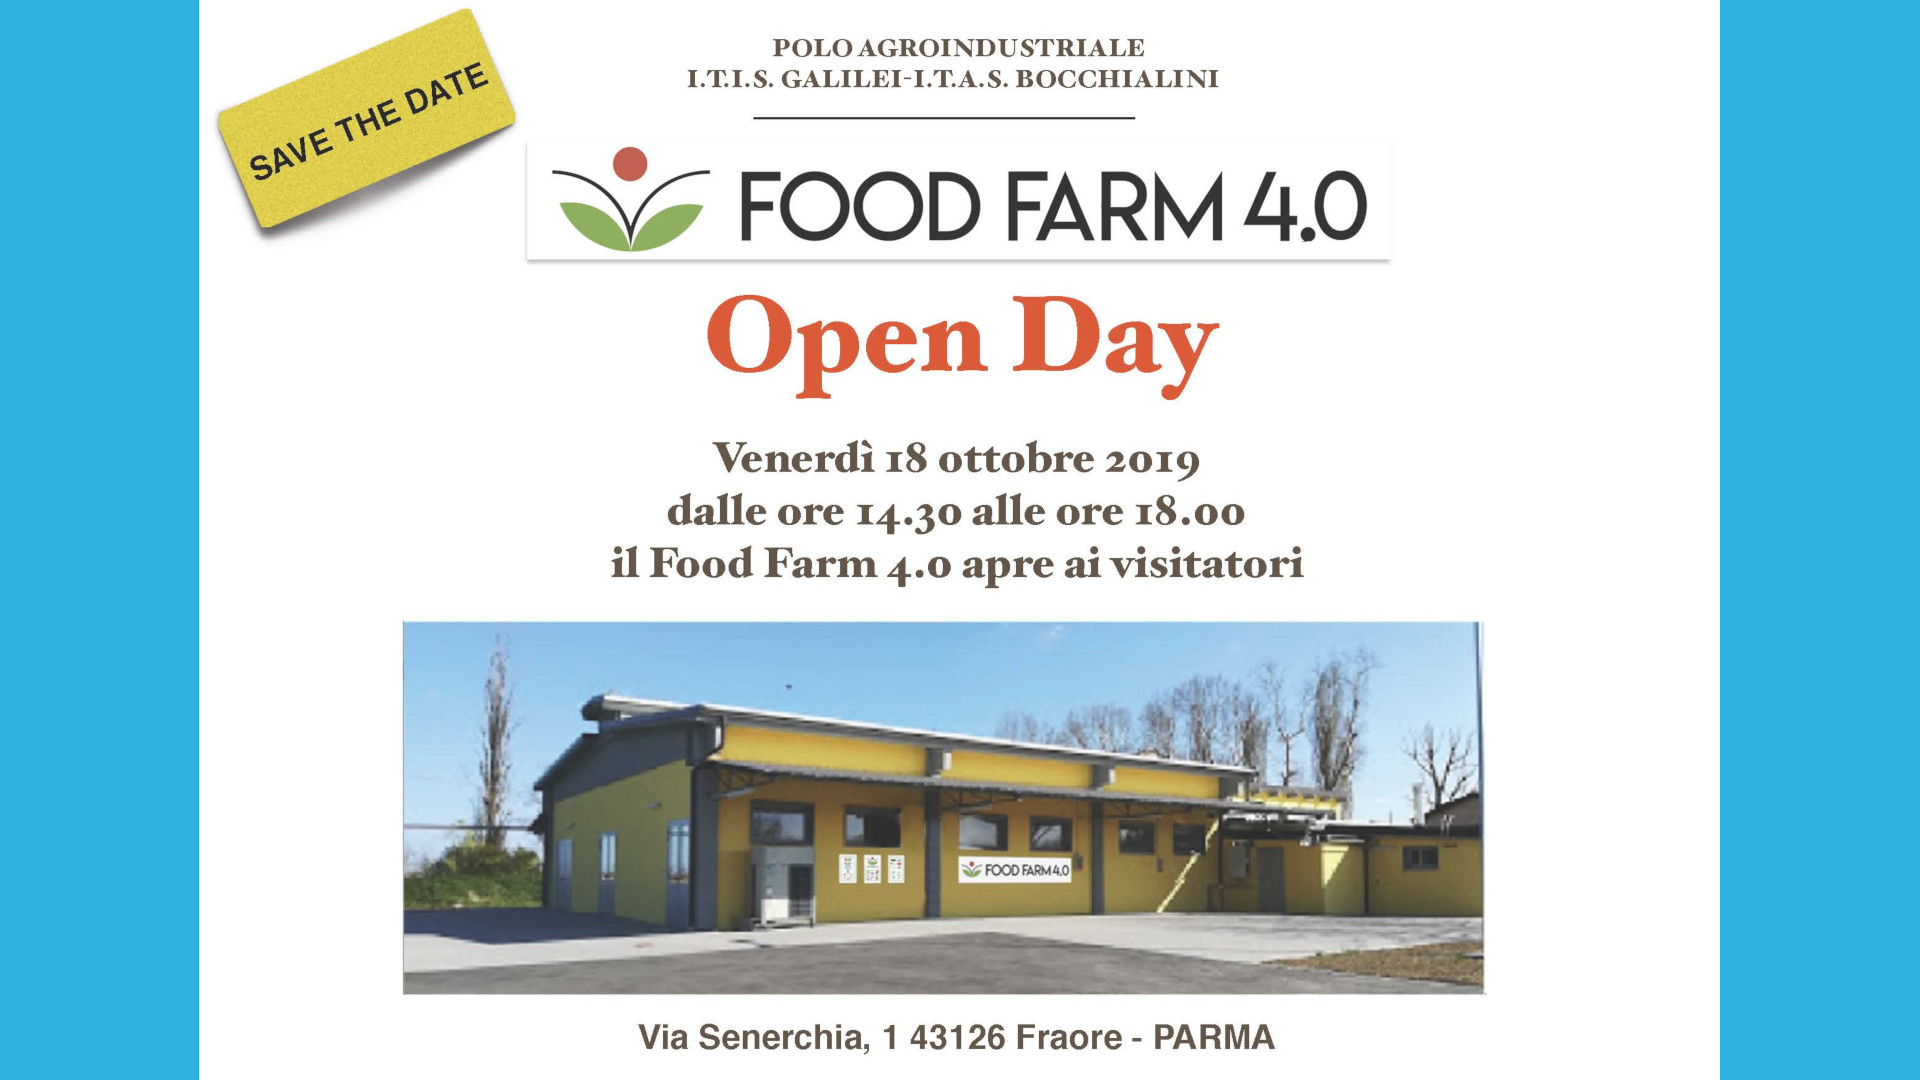 Food Farm 4.0 - Open Day